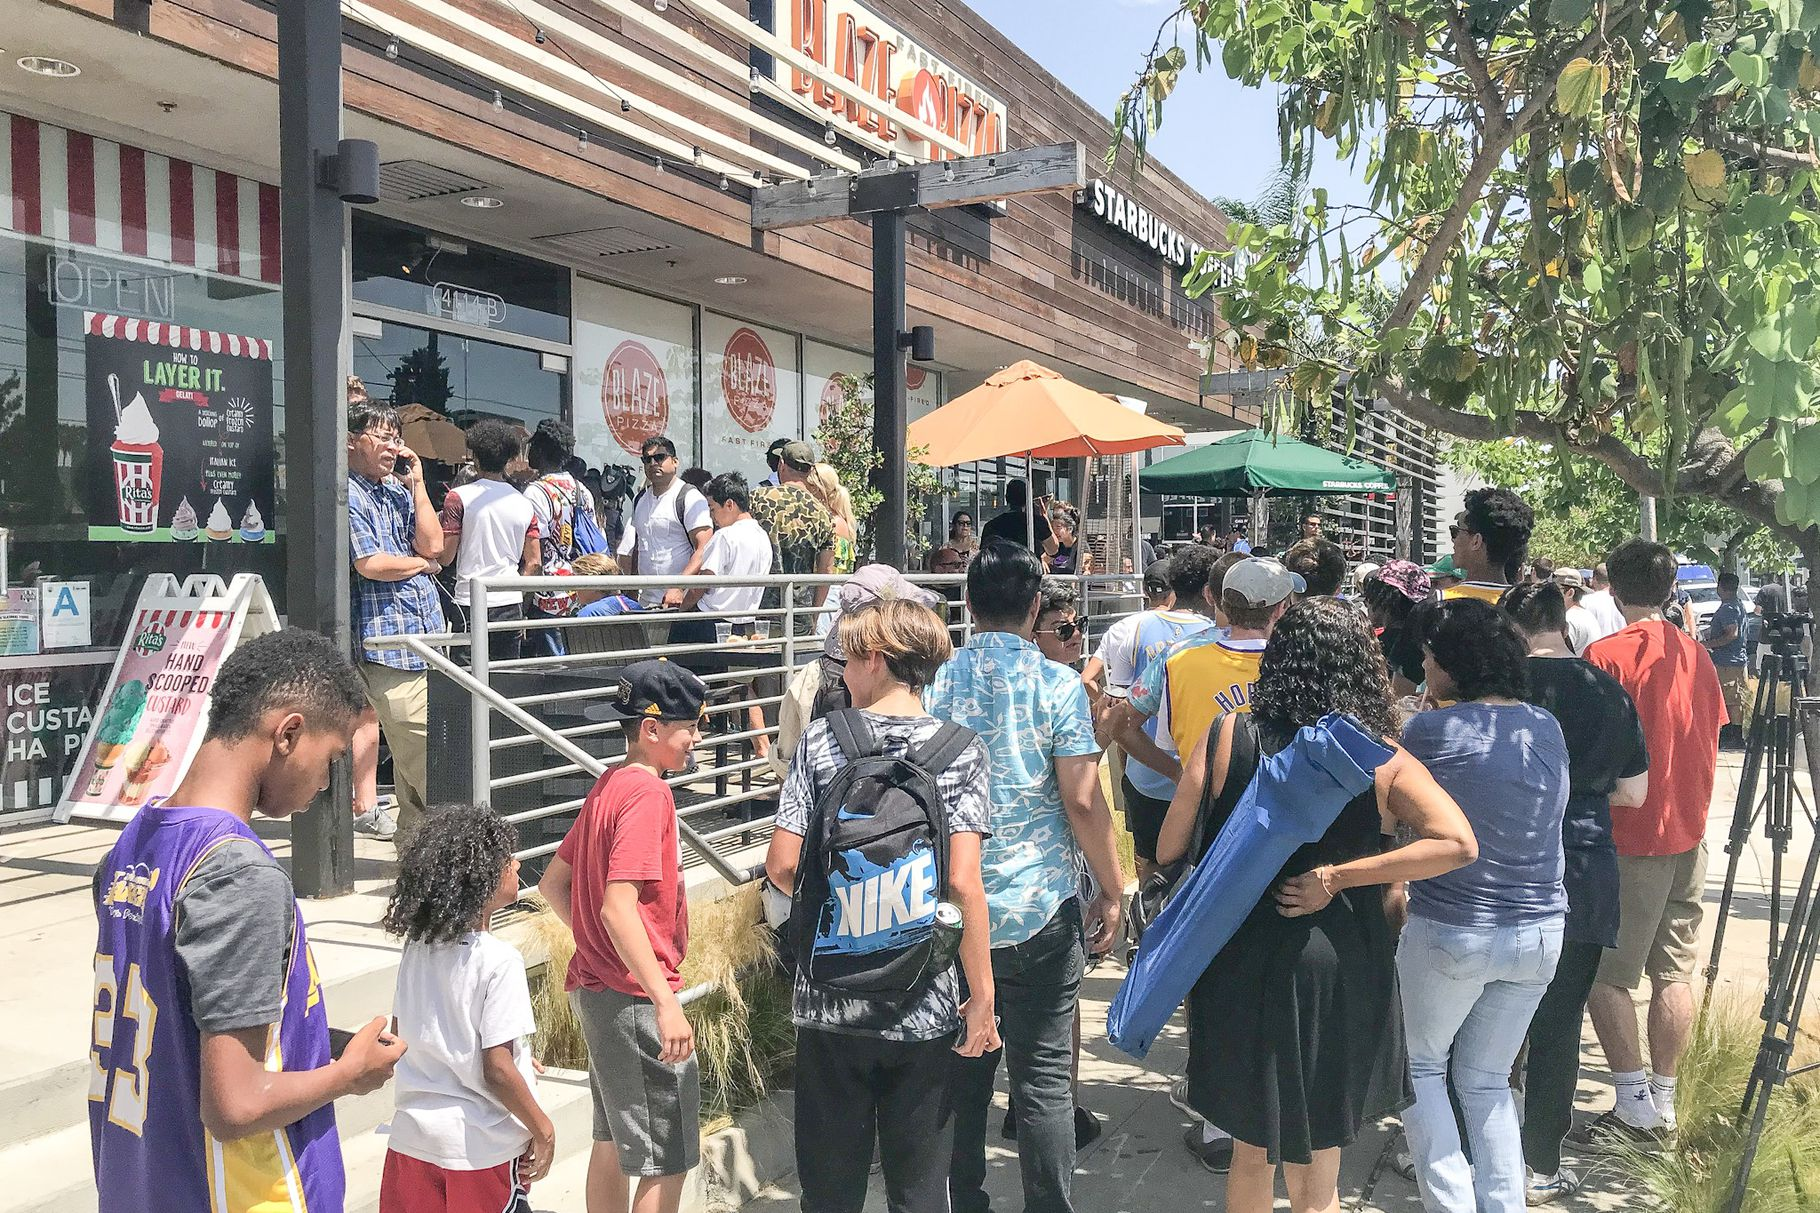 LeBron's Blaze Pizza Tweet Is Causing Mayhem in Culver City